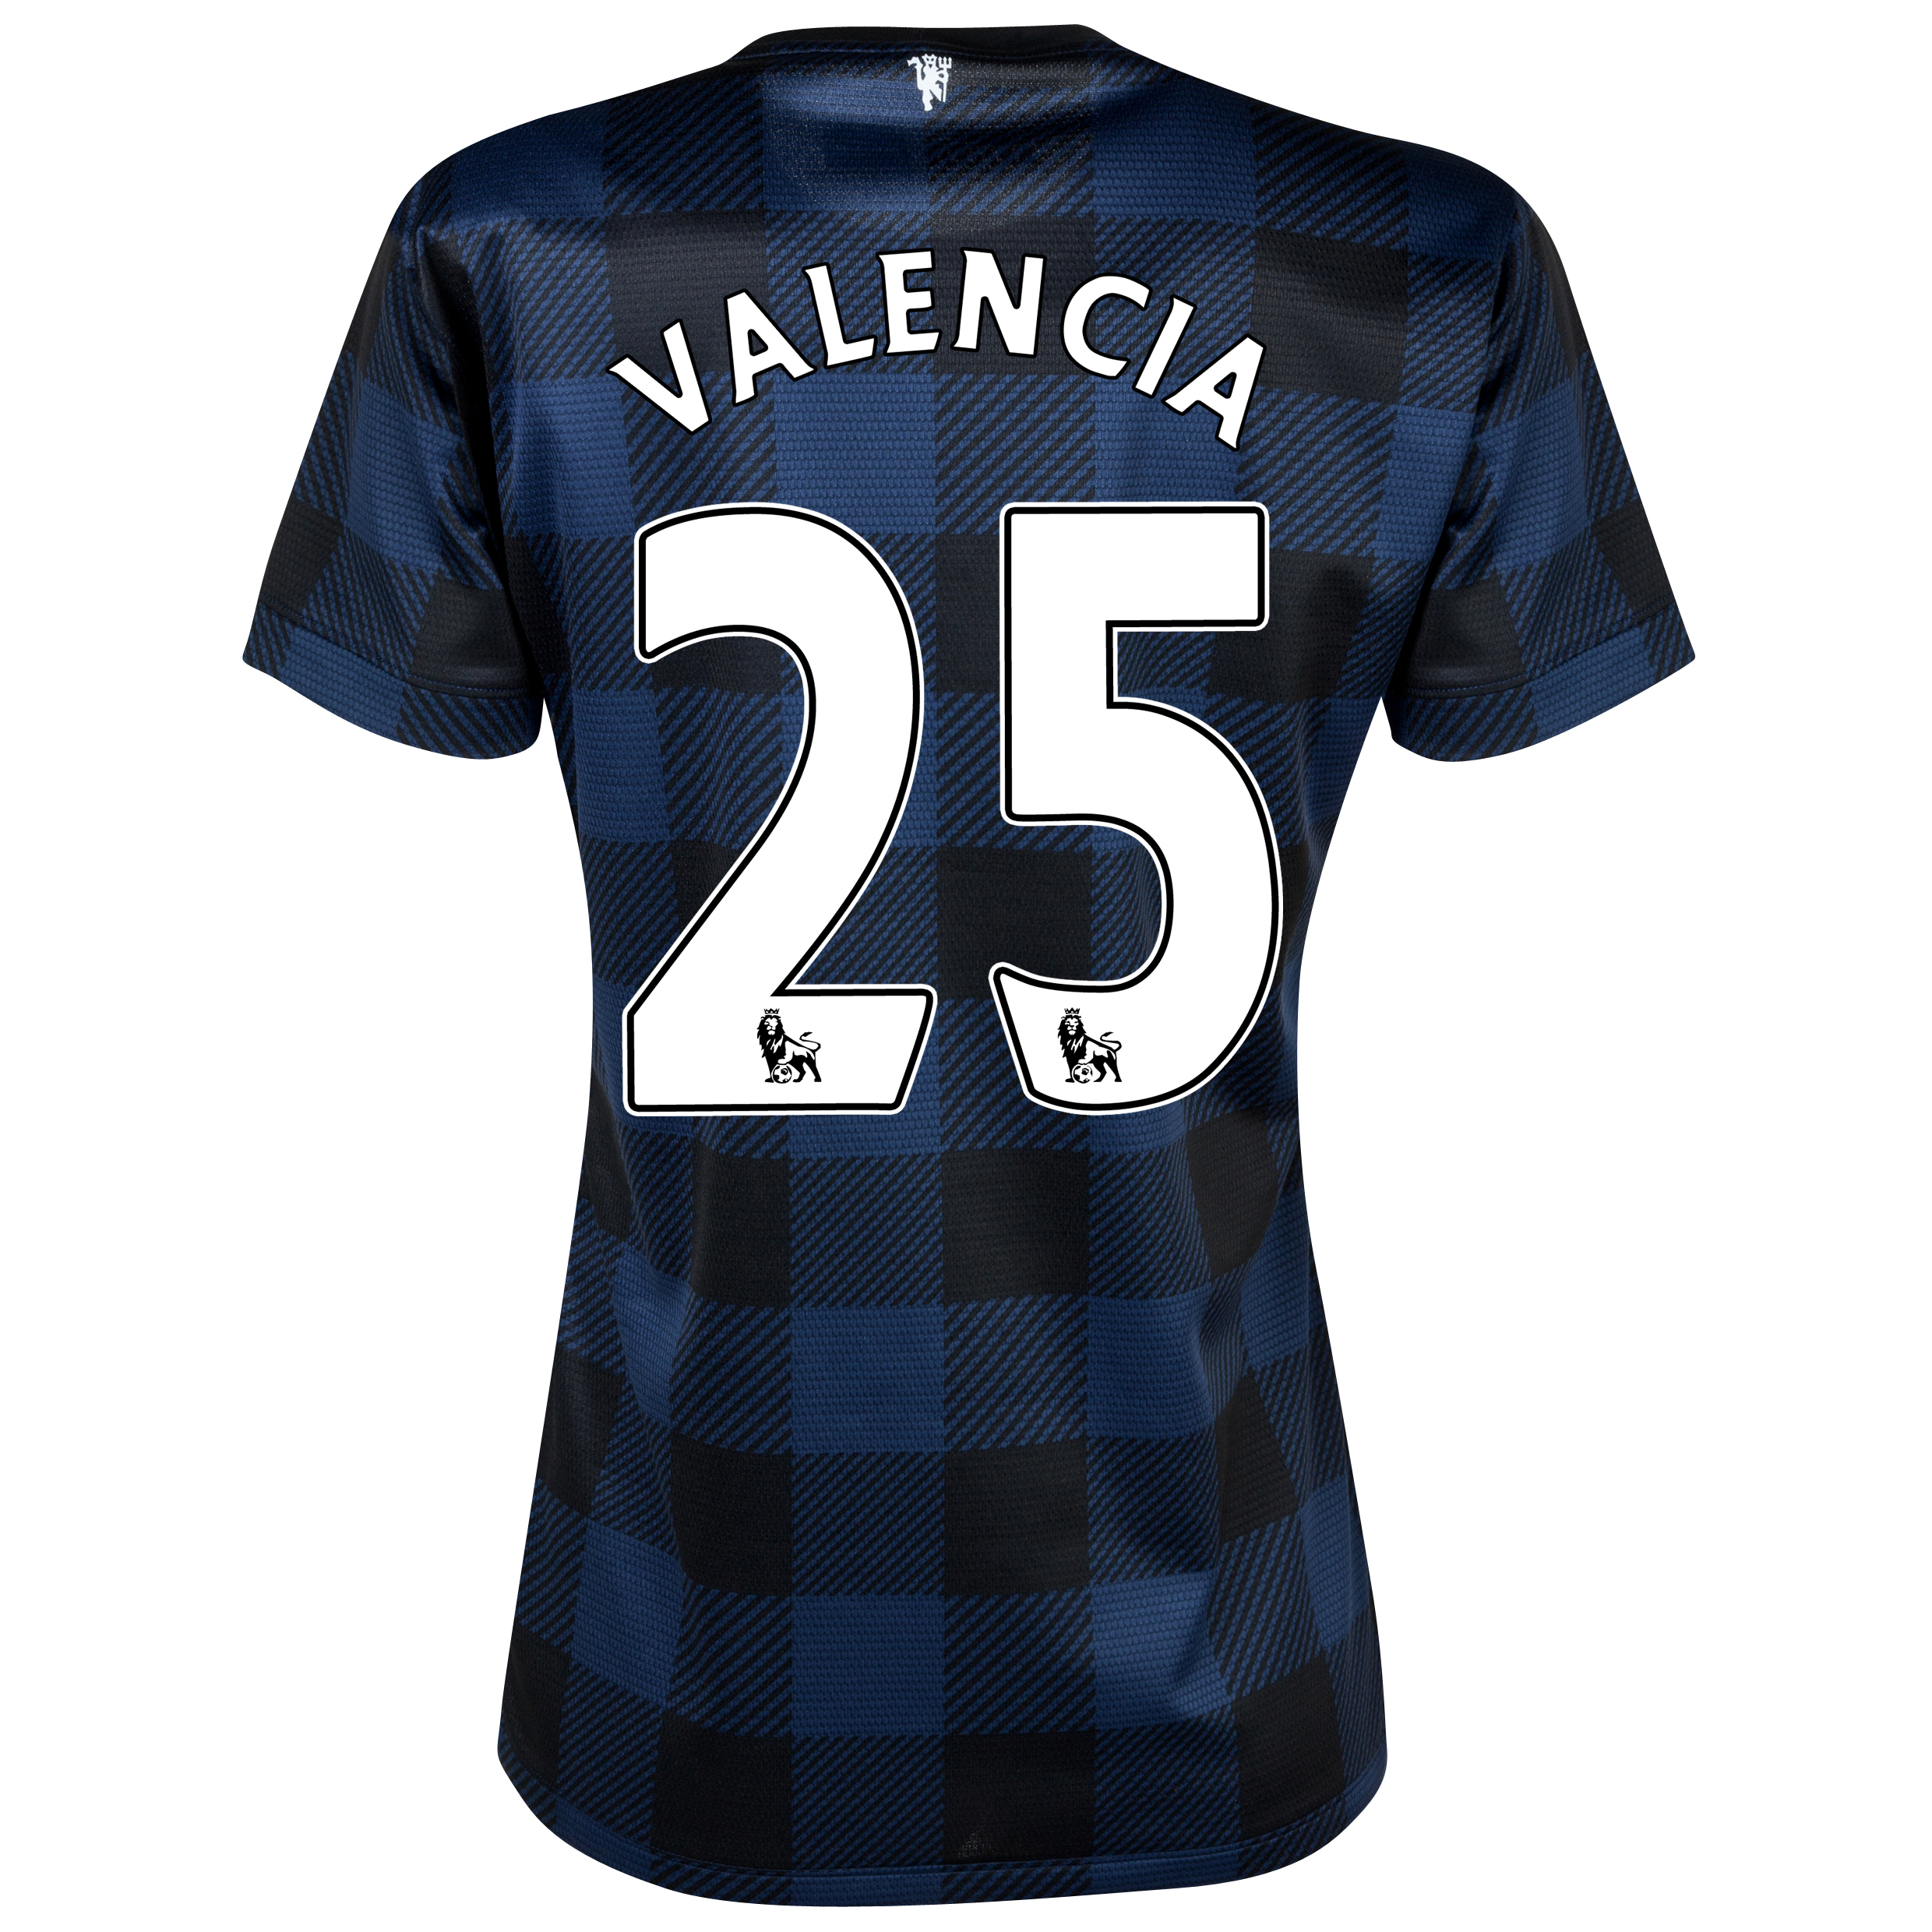 Manchester United Away Shirt 2013/14 - Womens with Valencia 25 printing